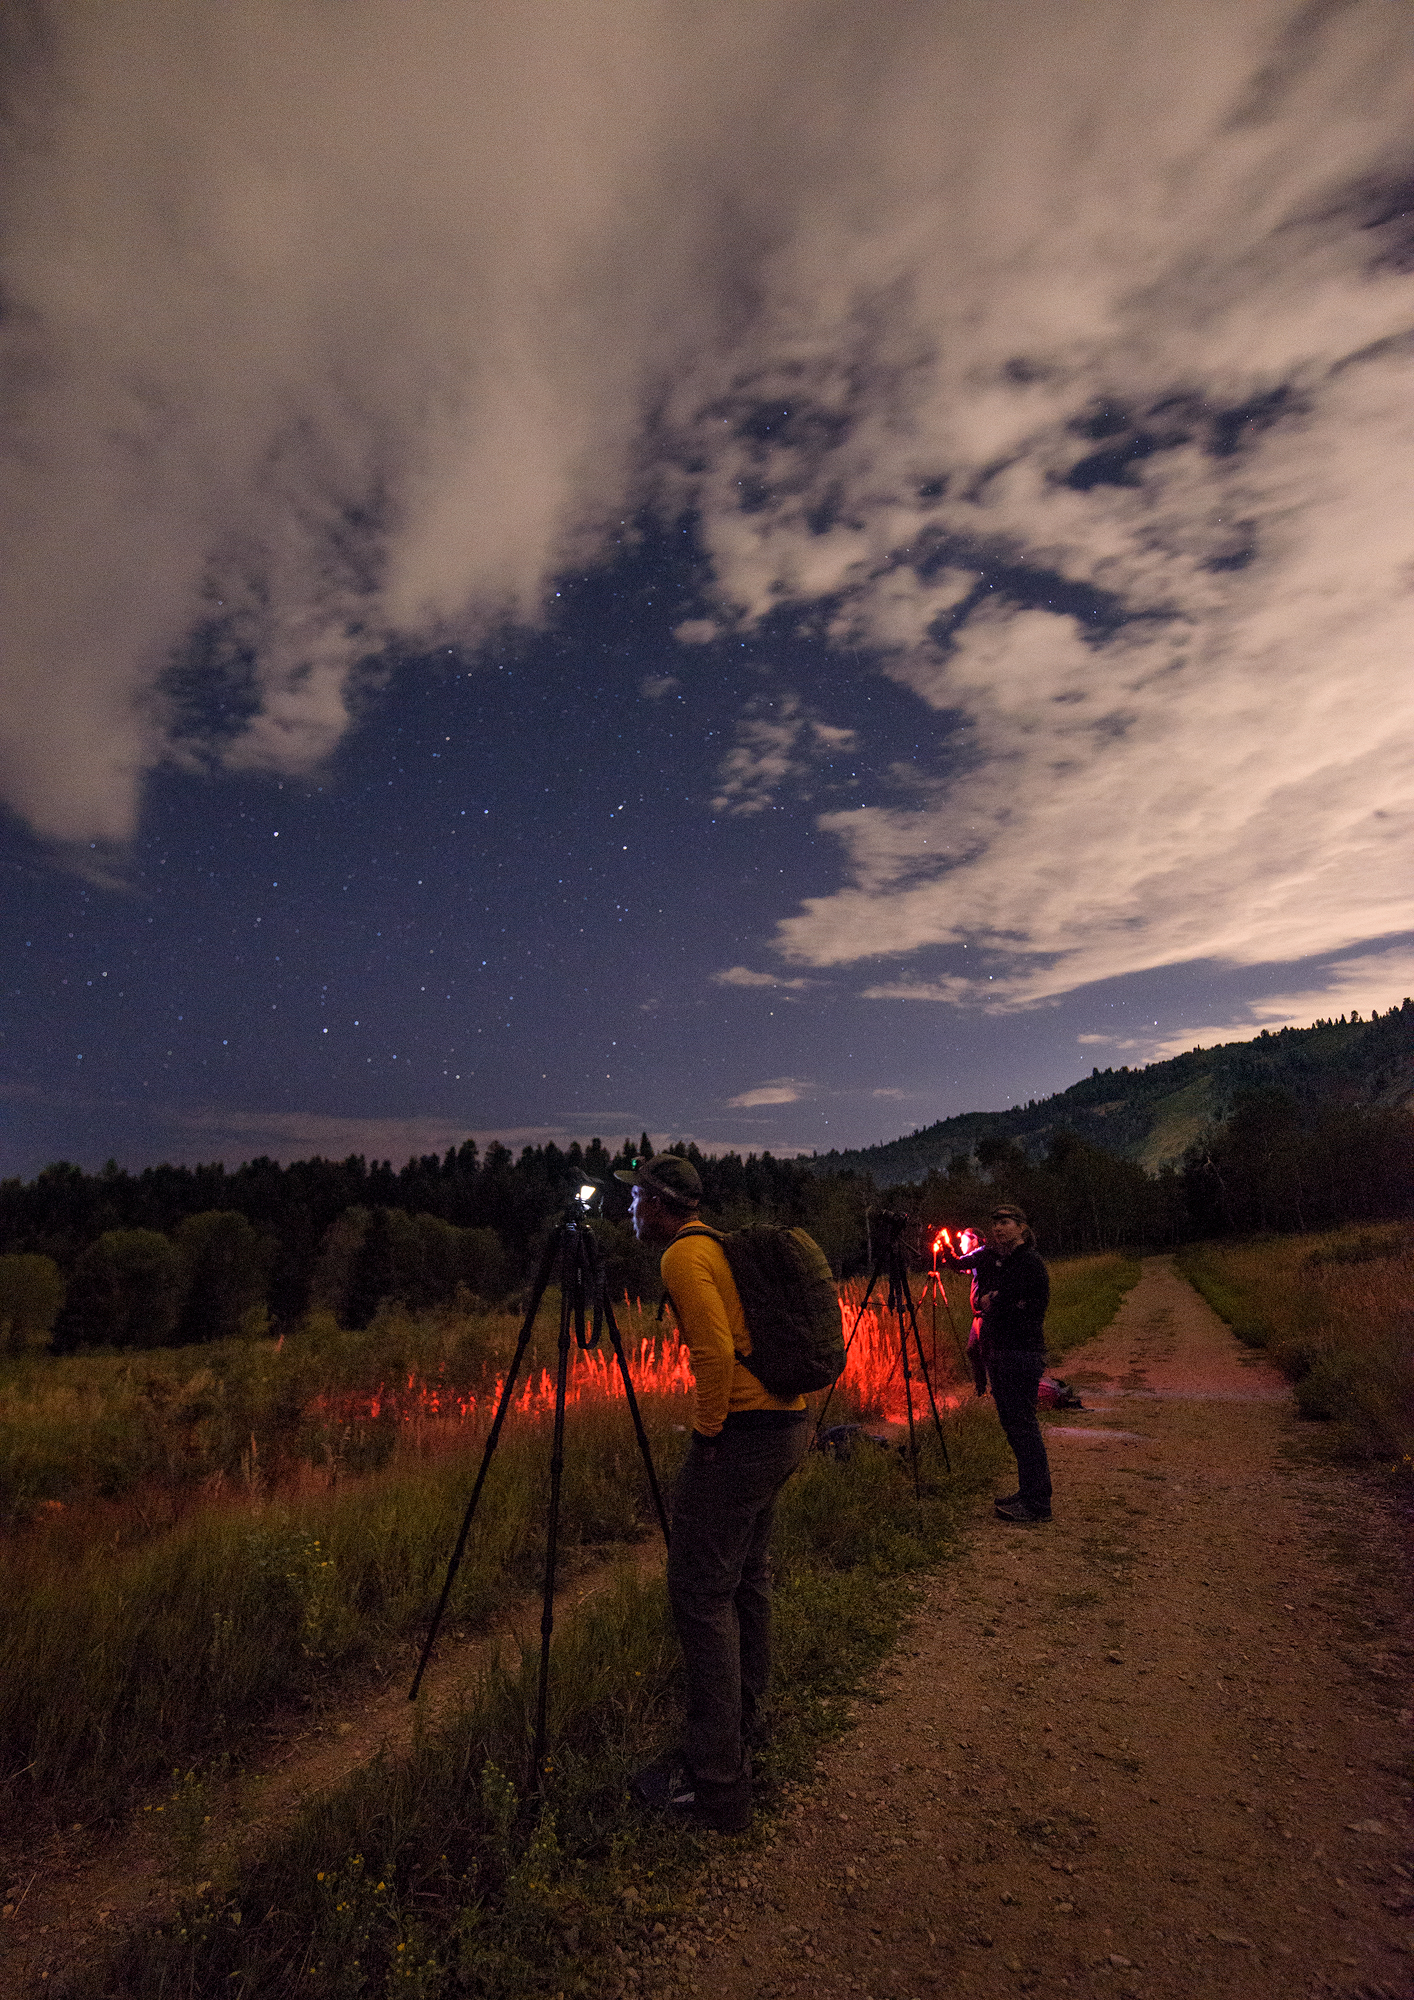 Night Photography -